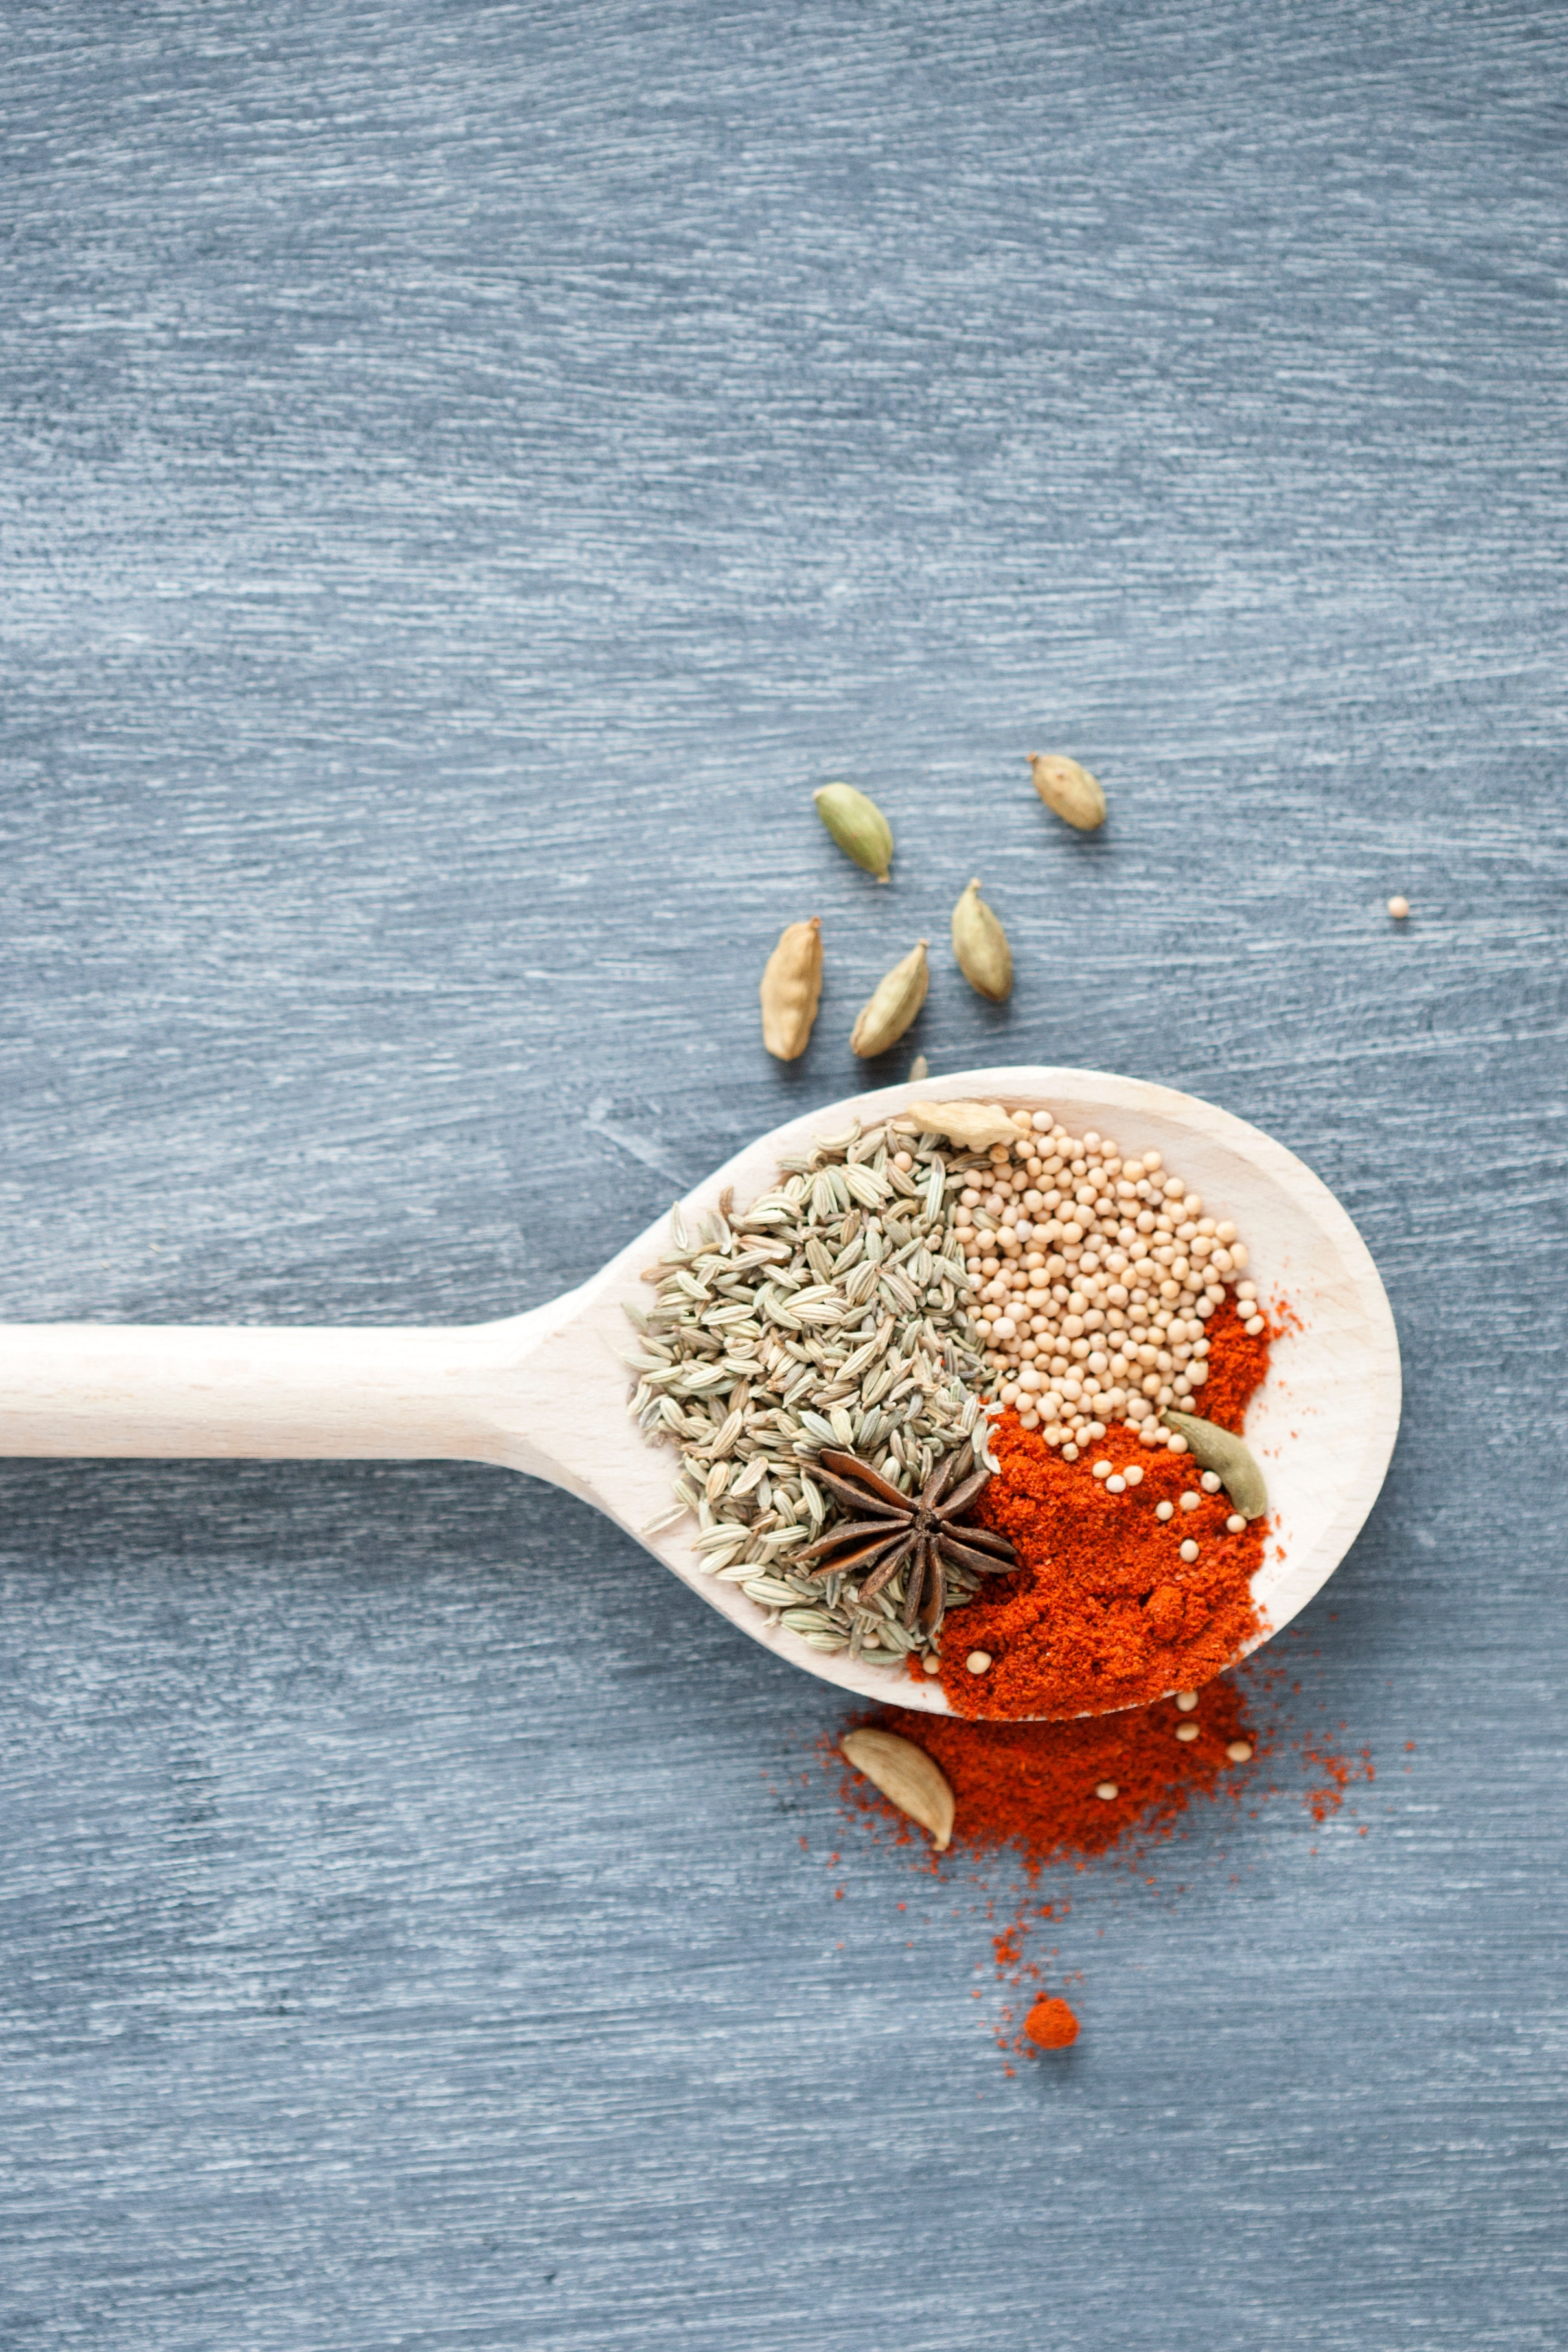 Fenugreek: The Good And Bad For Breastfeeding and Milk Supply